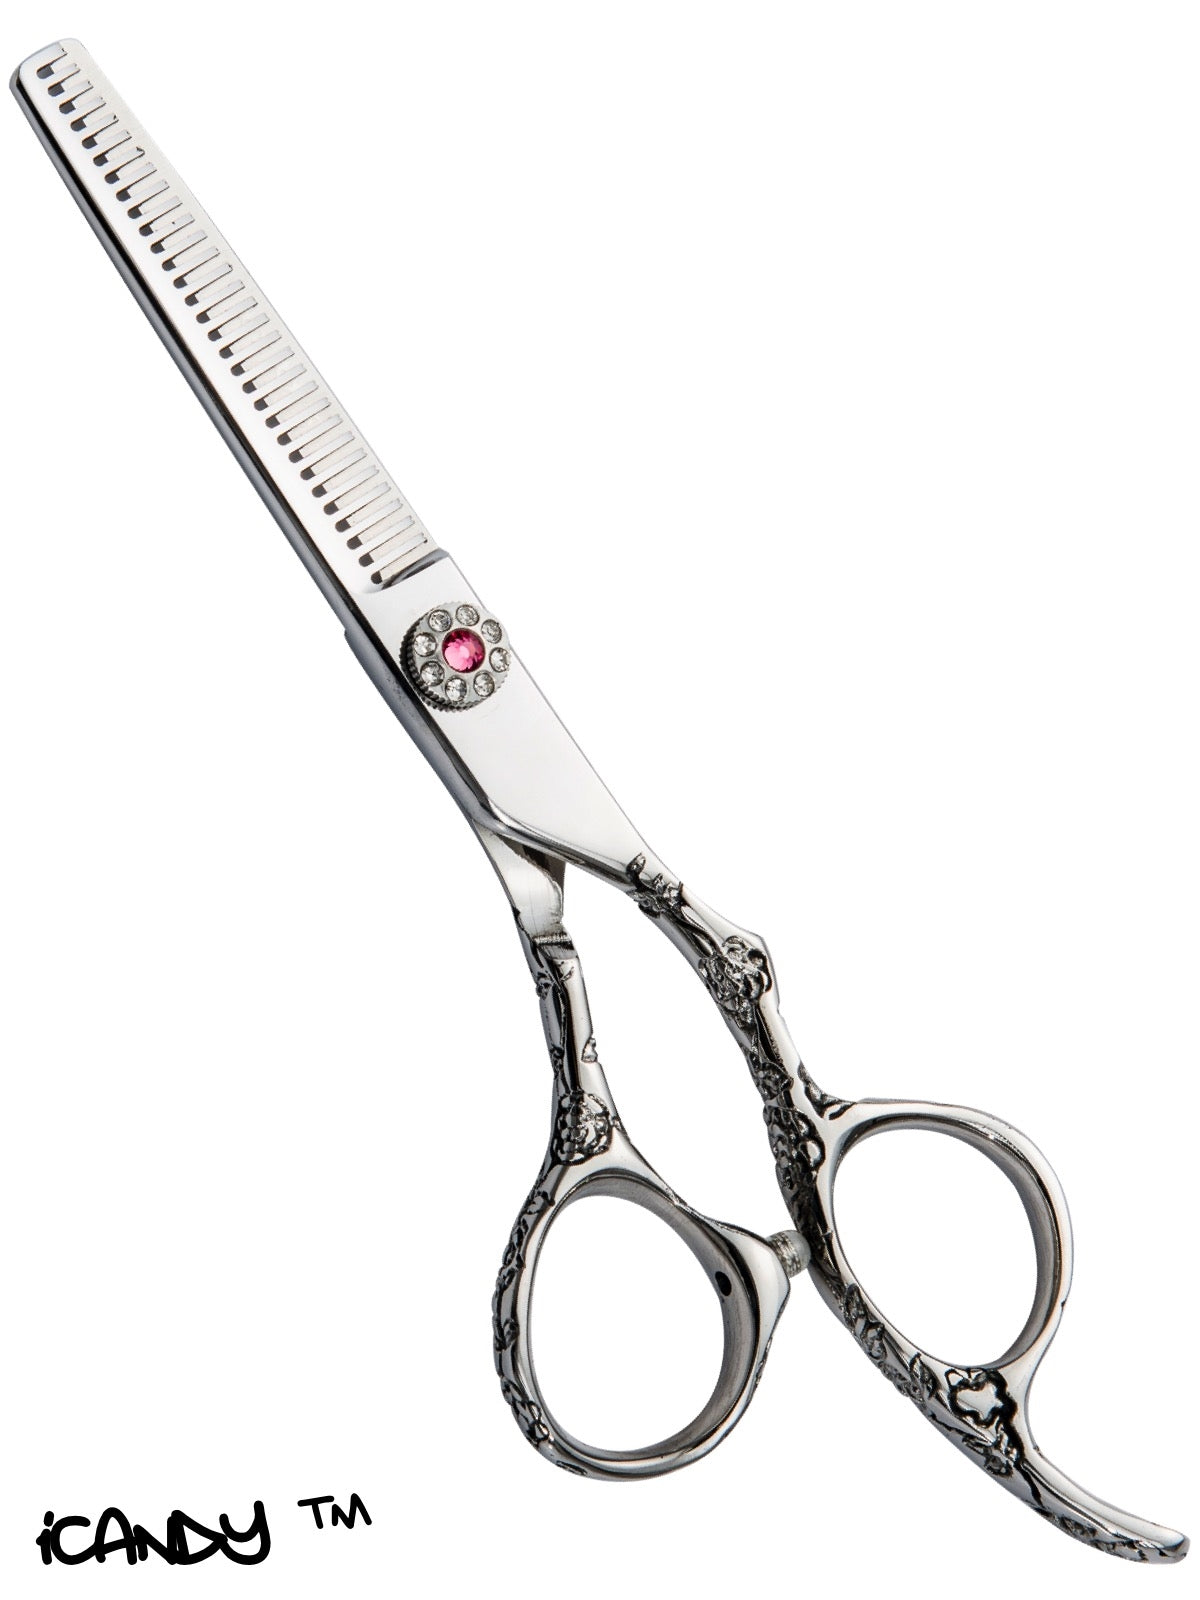 iCandy-Dream-Mirror-Scissors-Bundle- Limited Edition !  (5.5 inch) - iCandy Scissors